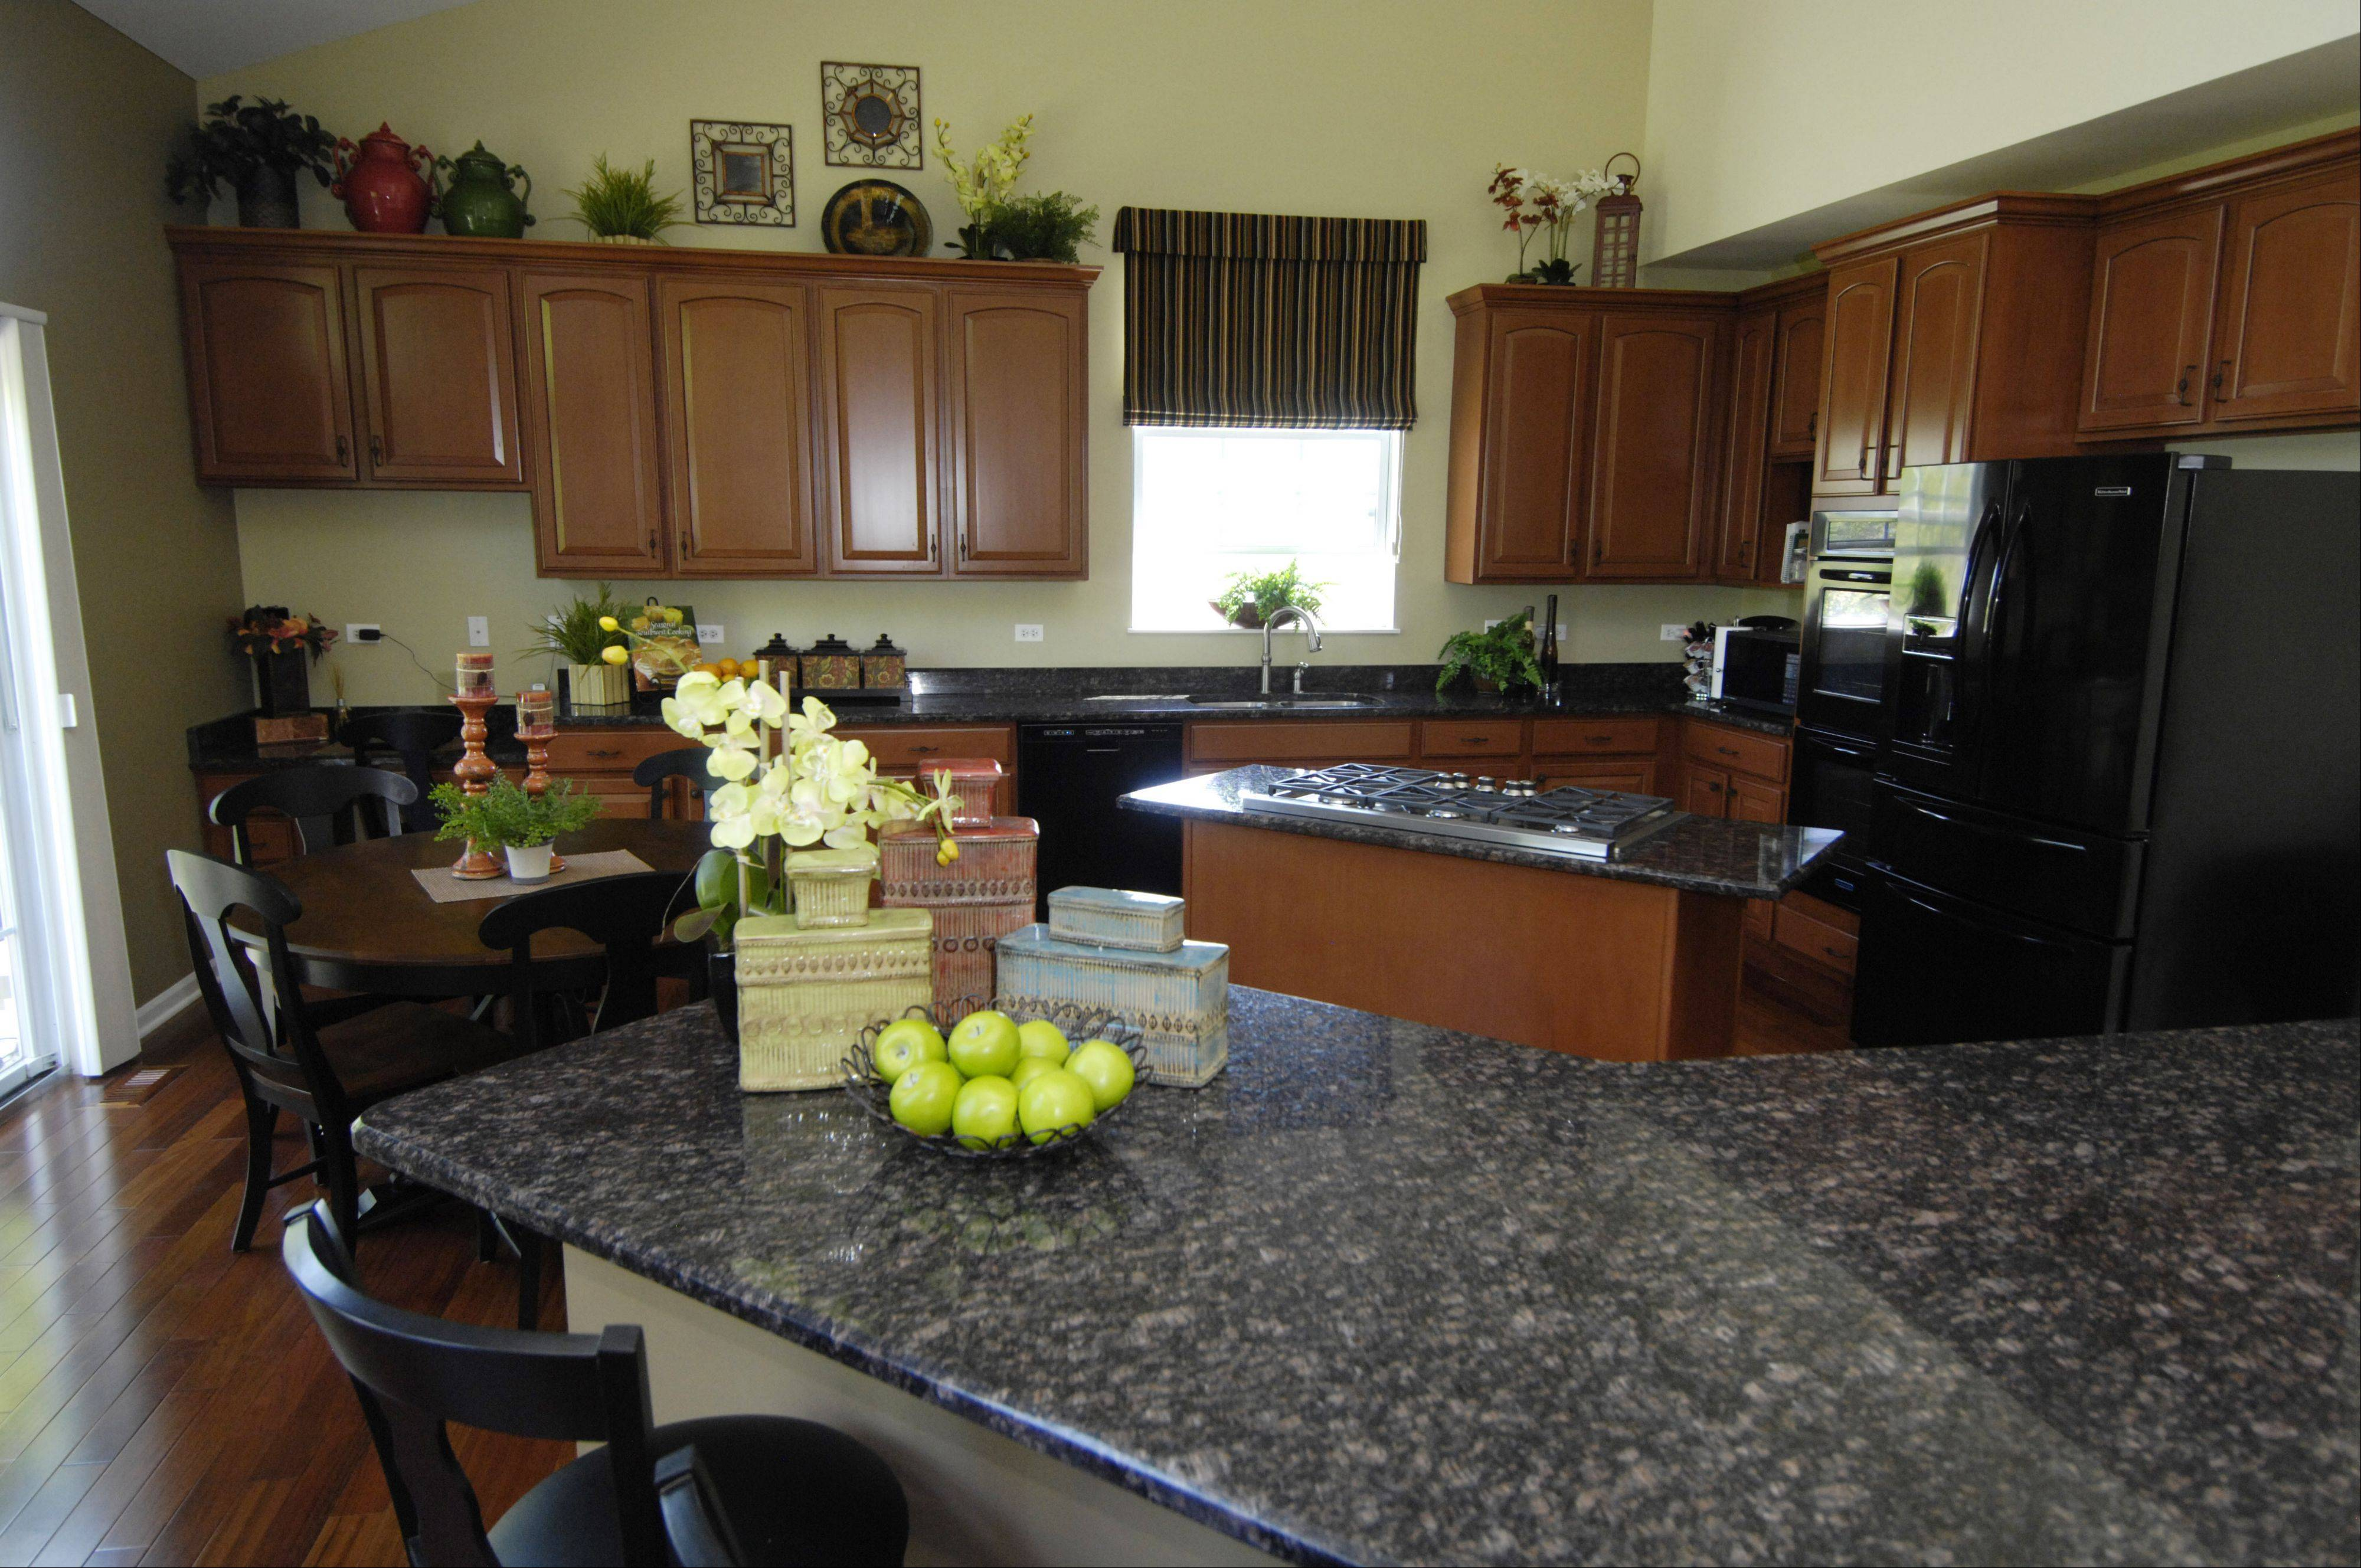 The layout of the kitchen remained the same but a new look comes from refinished cabinets, a new wall color, a black granite countertop and cherry wood flooring.